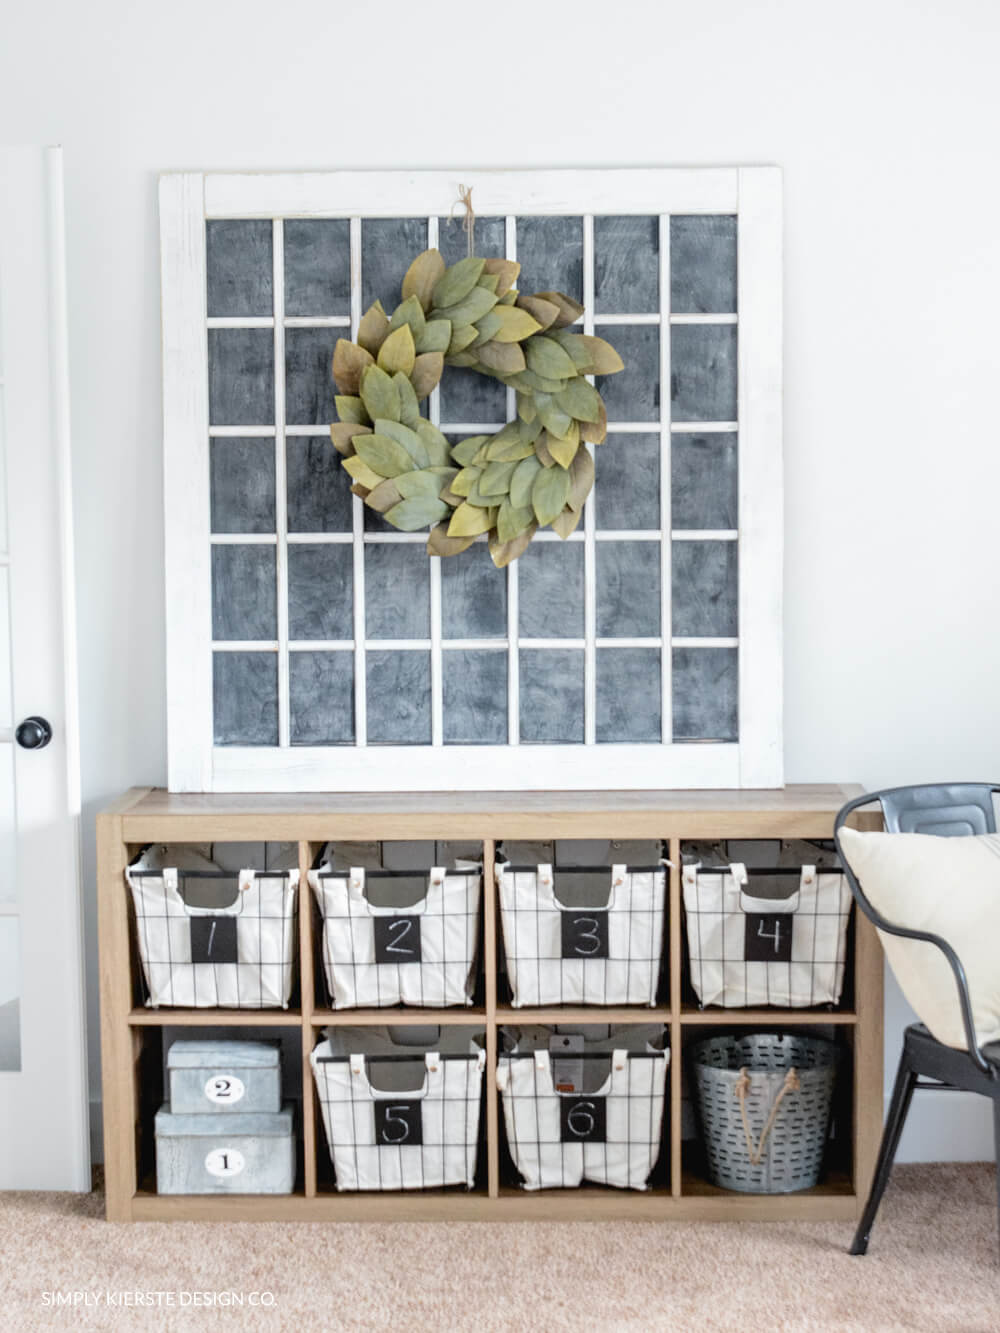 Evenly Divided Neat Storage Baskets